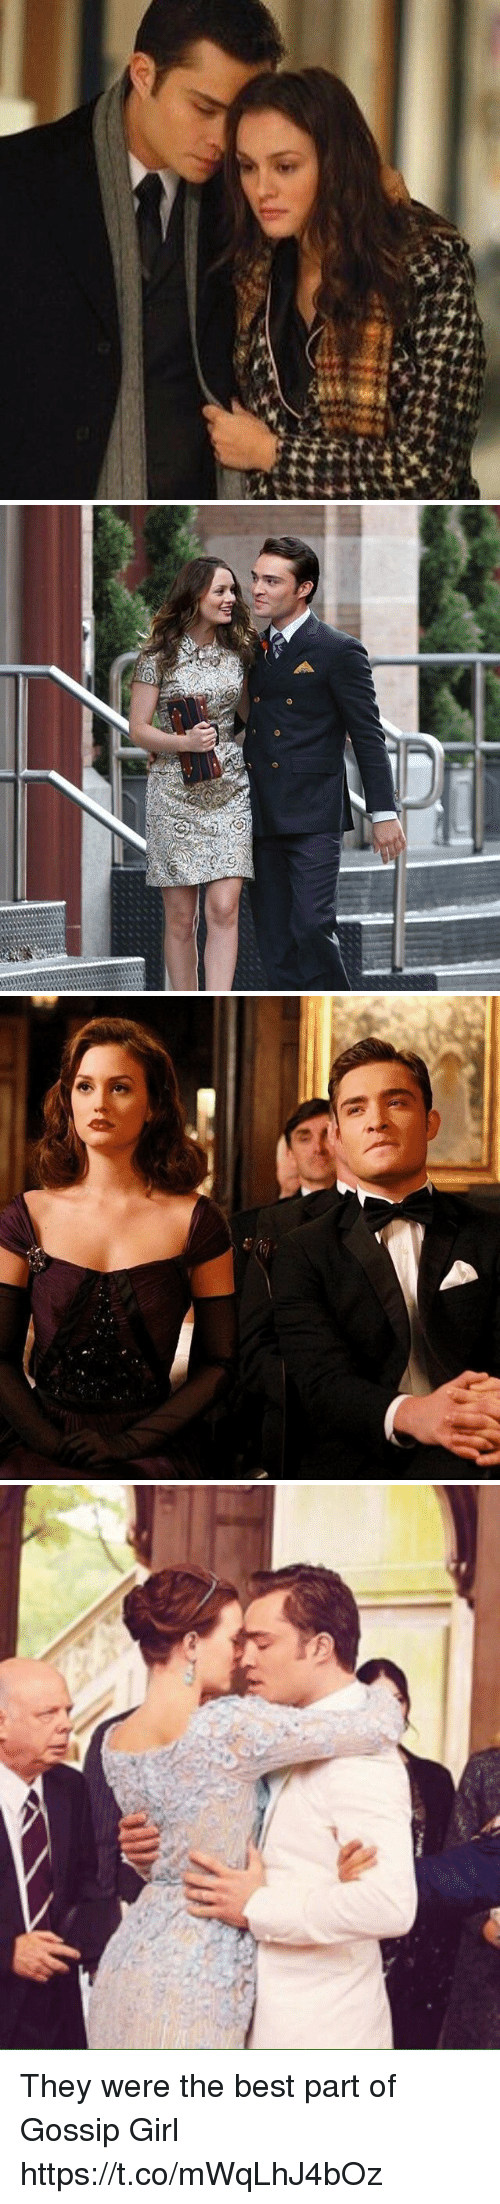 Memes, Best, and Girl: They were the best part of Gossip Girl https://t.co/mWqLhJ4bOz